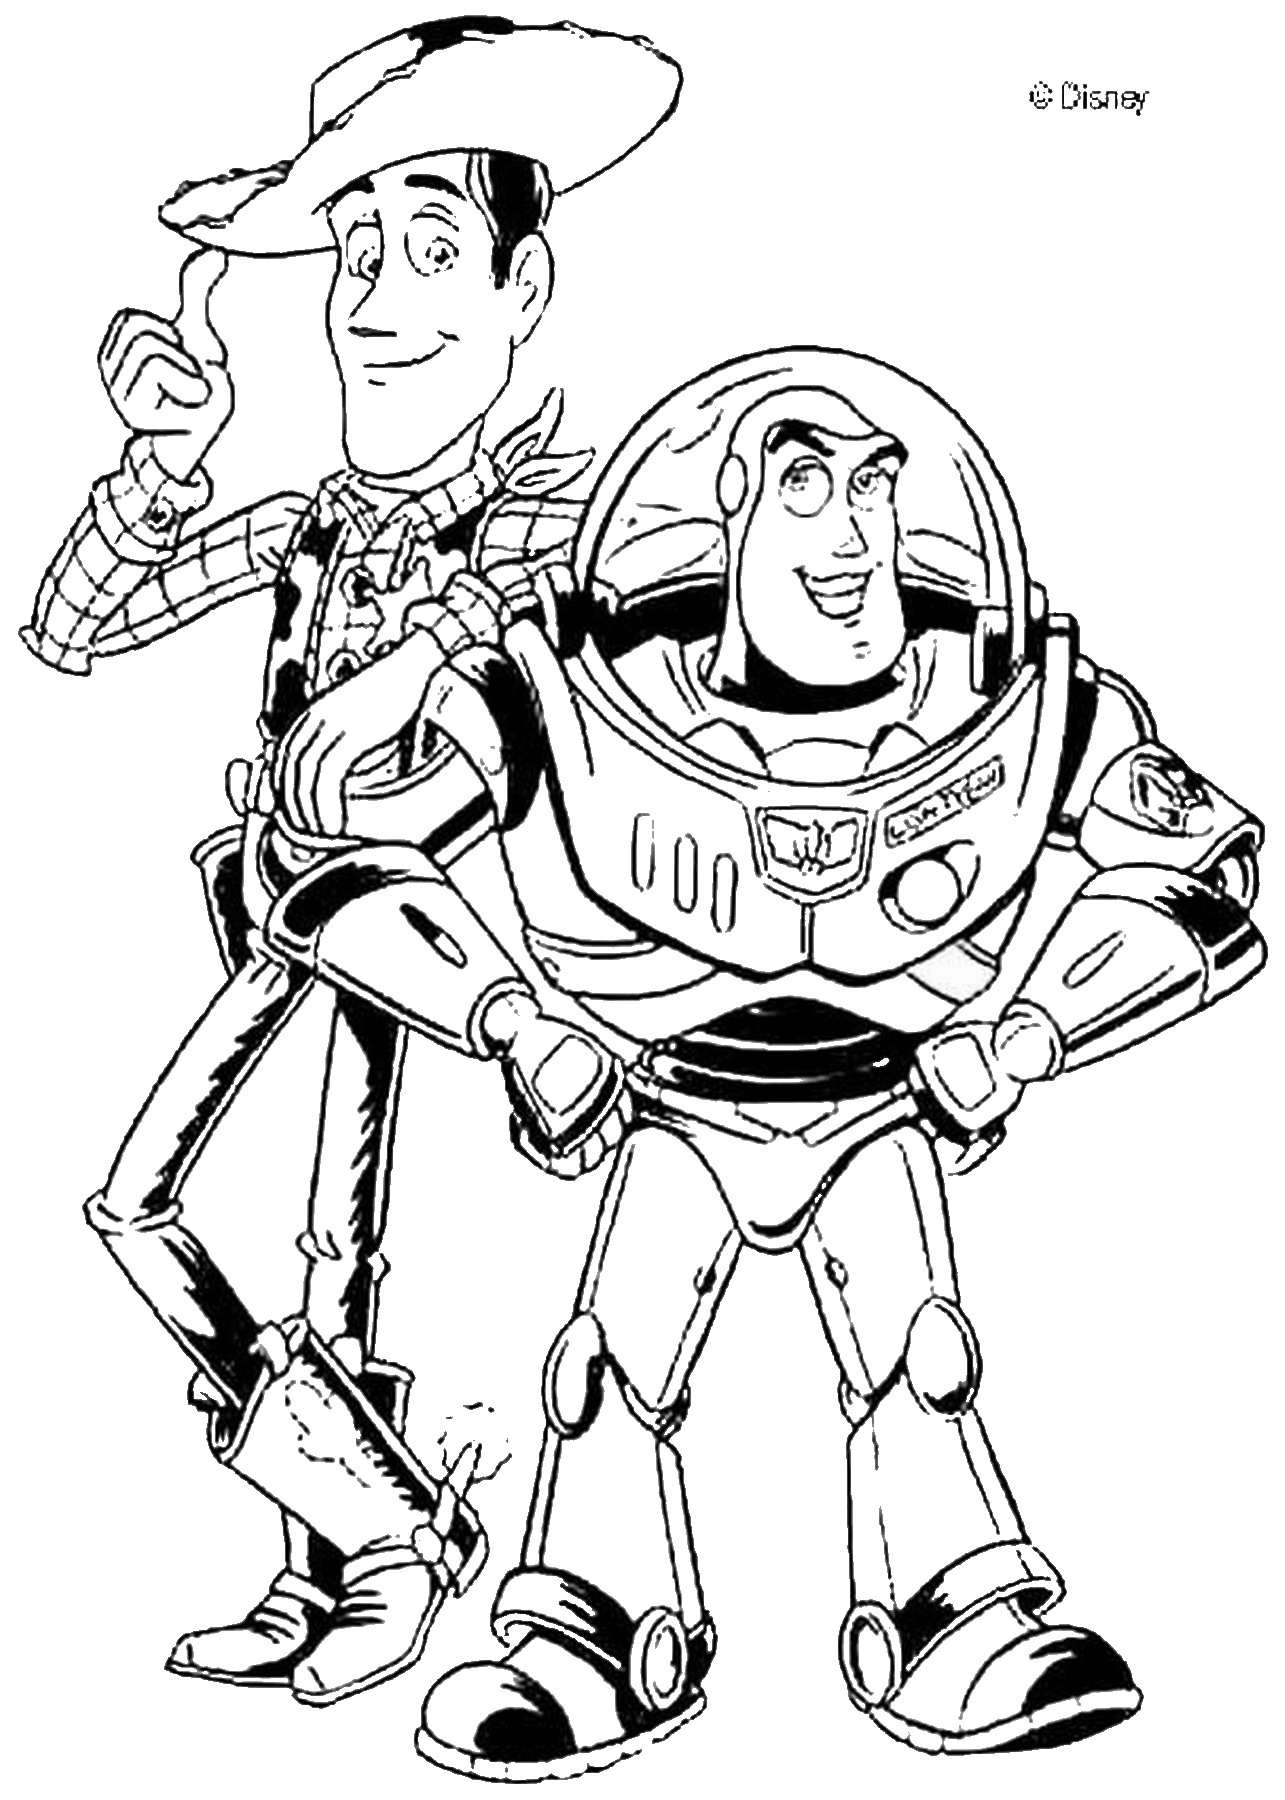 coloring printable free disney coloring pages to download and print for free free coloring printable